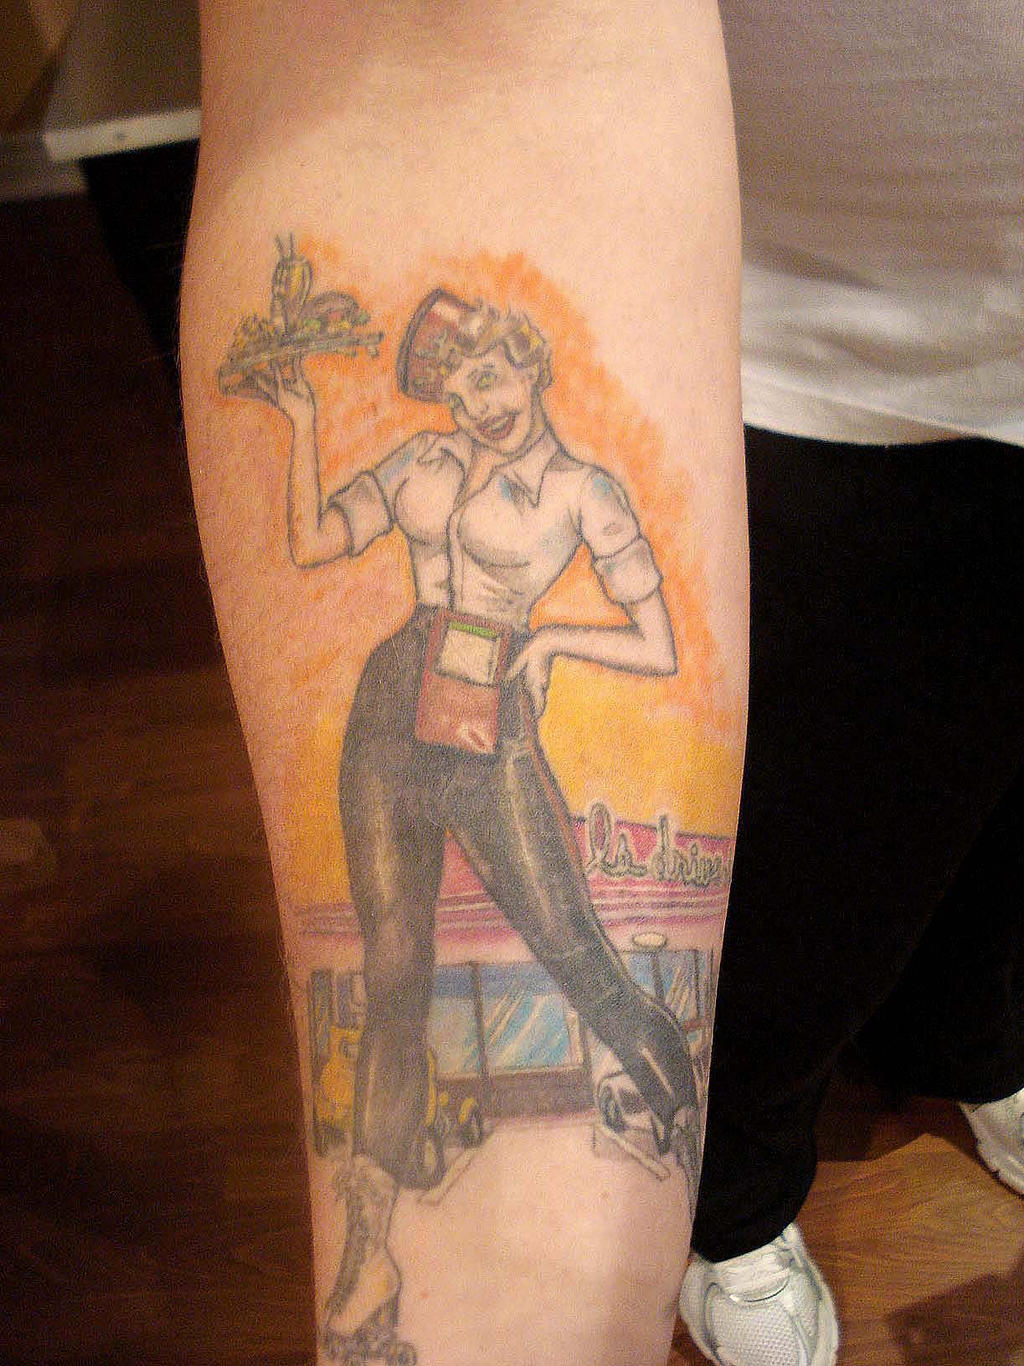 american graffiti tattoo by morobles on deviantart